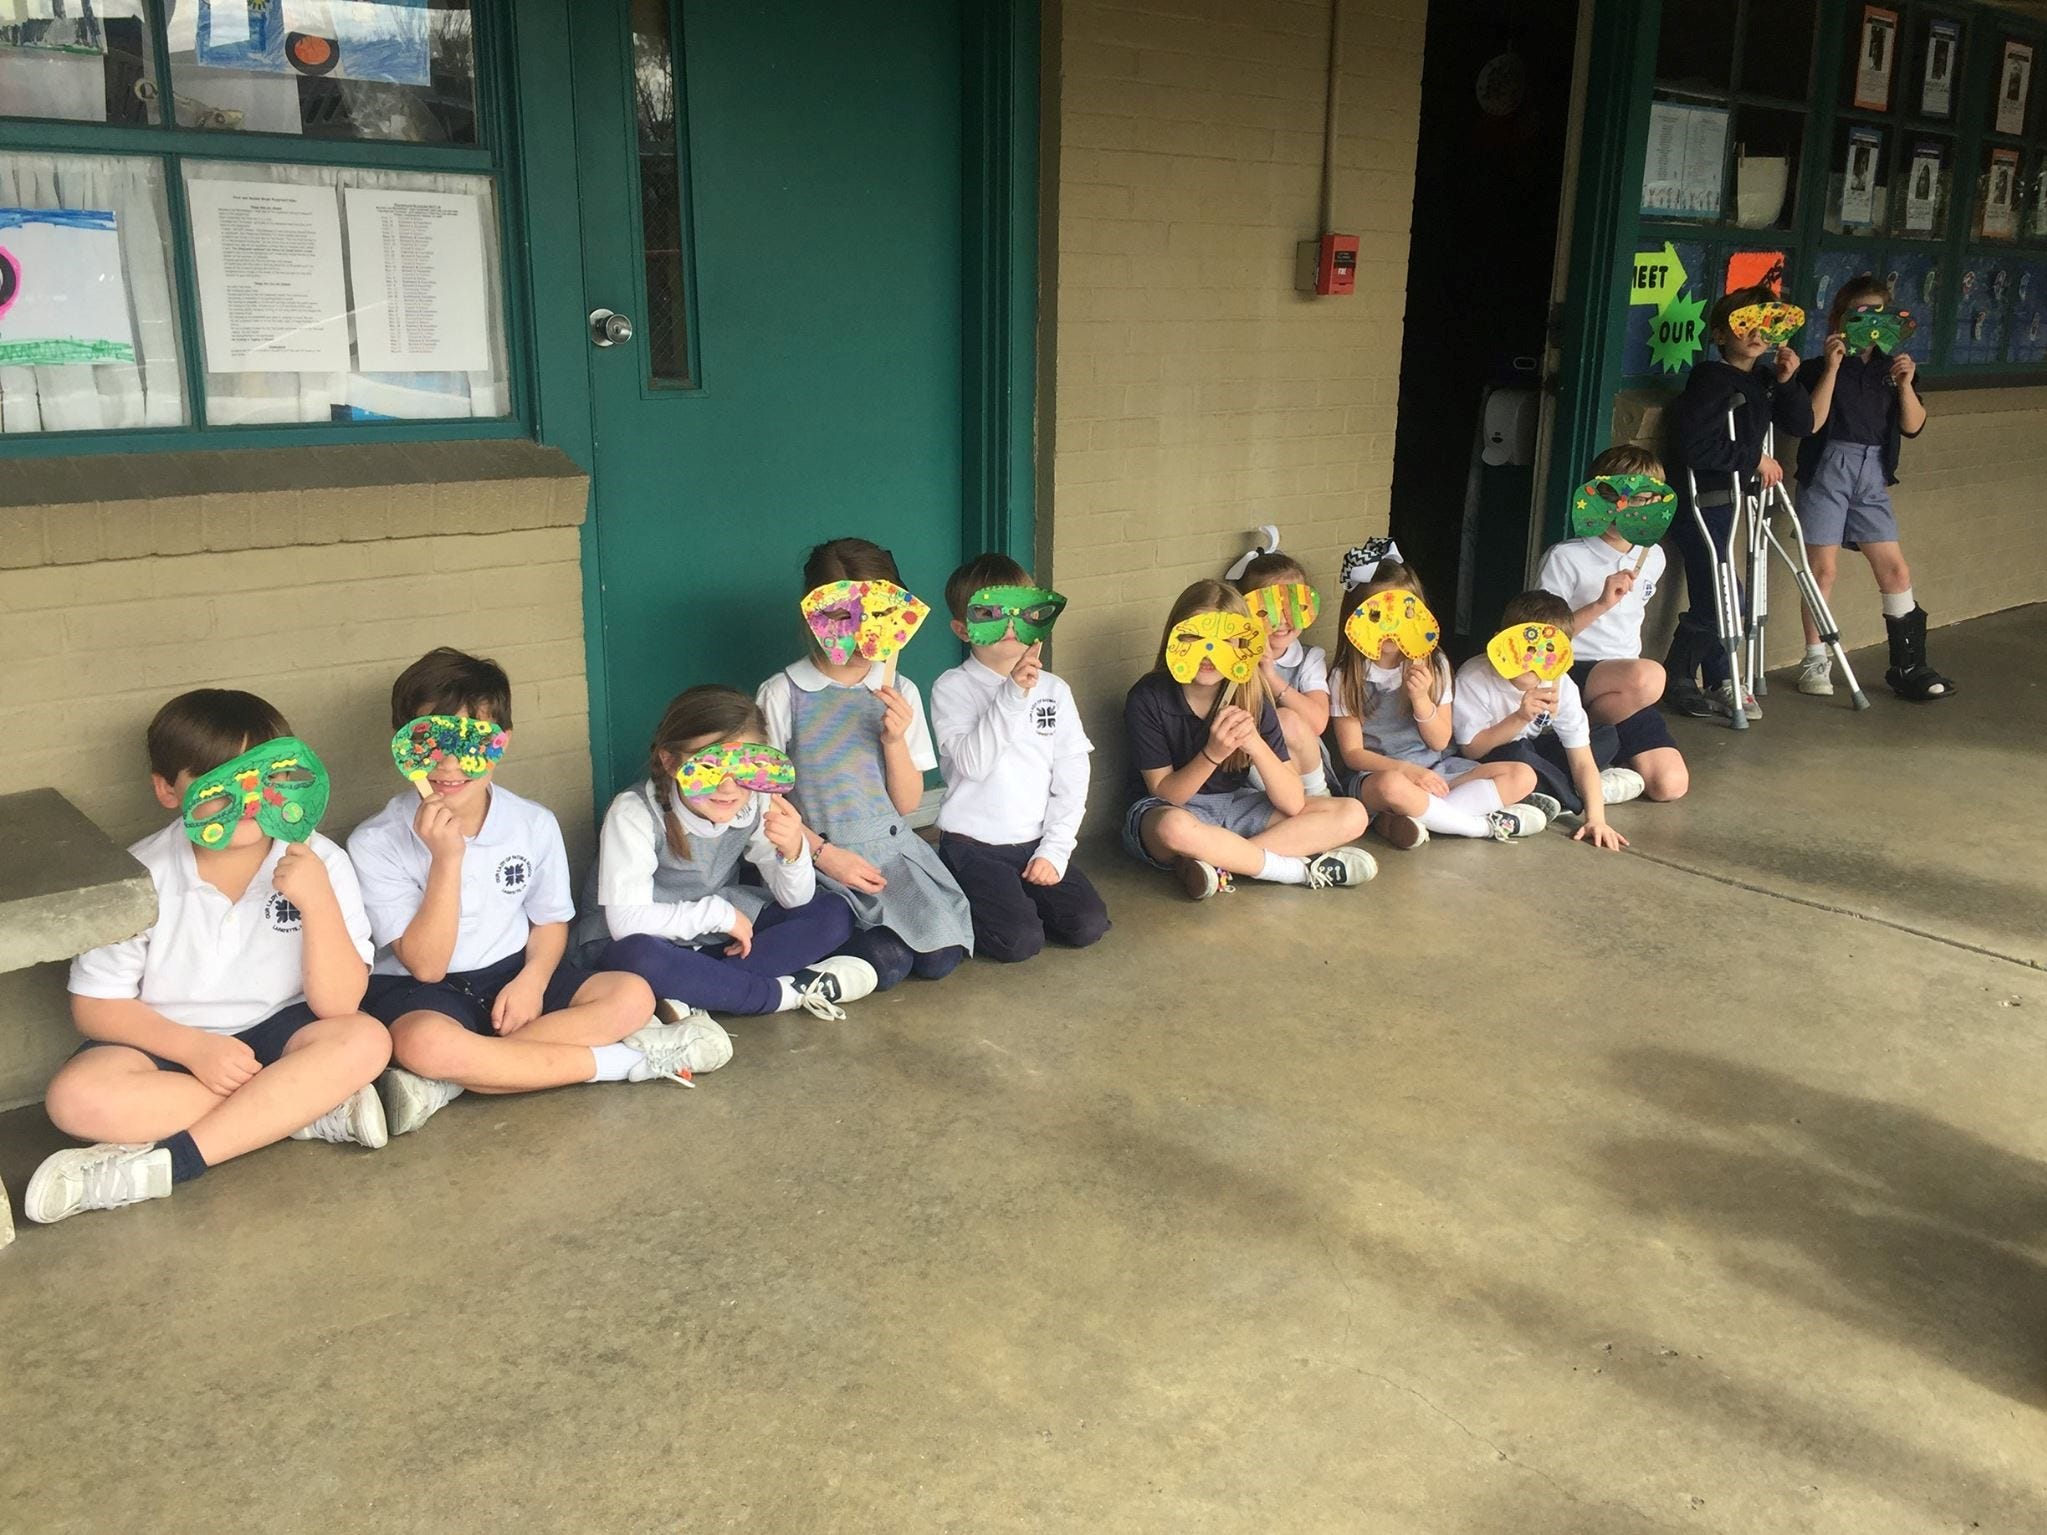 Our Lady of Fatima School students celebrate and learn about Mardi Gras leading up to the observance. Kindergarten classes make floats and masks before having a parade. Pre-K 3 and Campus Ministry also participate in the parade.